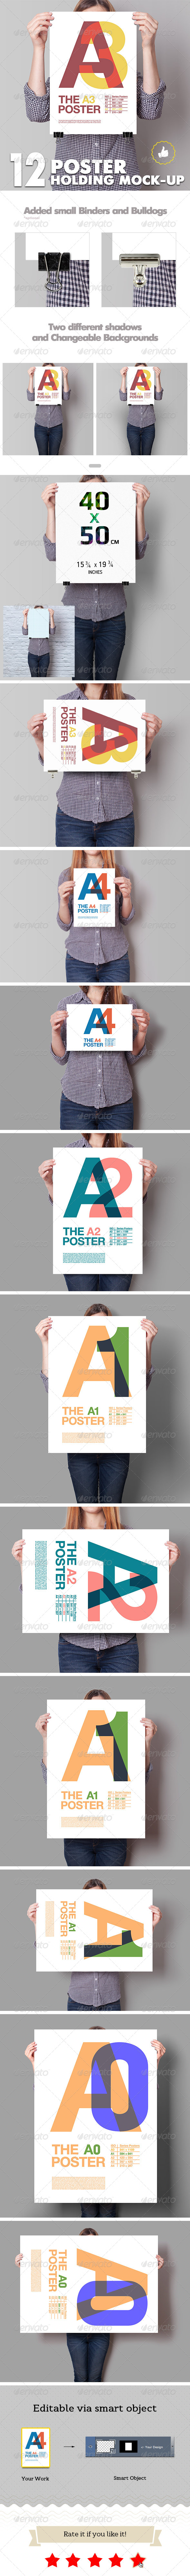 Poster Mockup / 12 Different Images - Posters Print